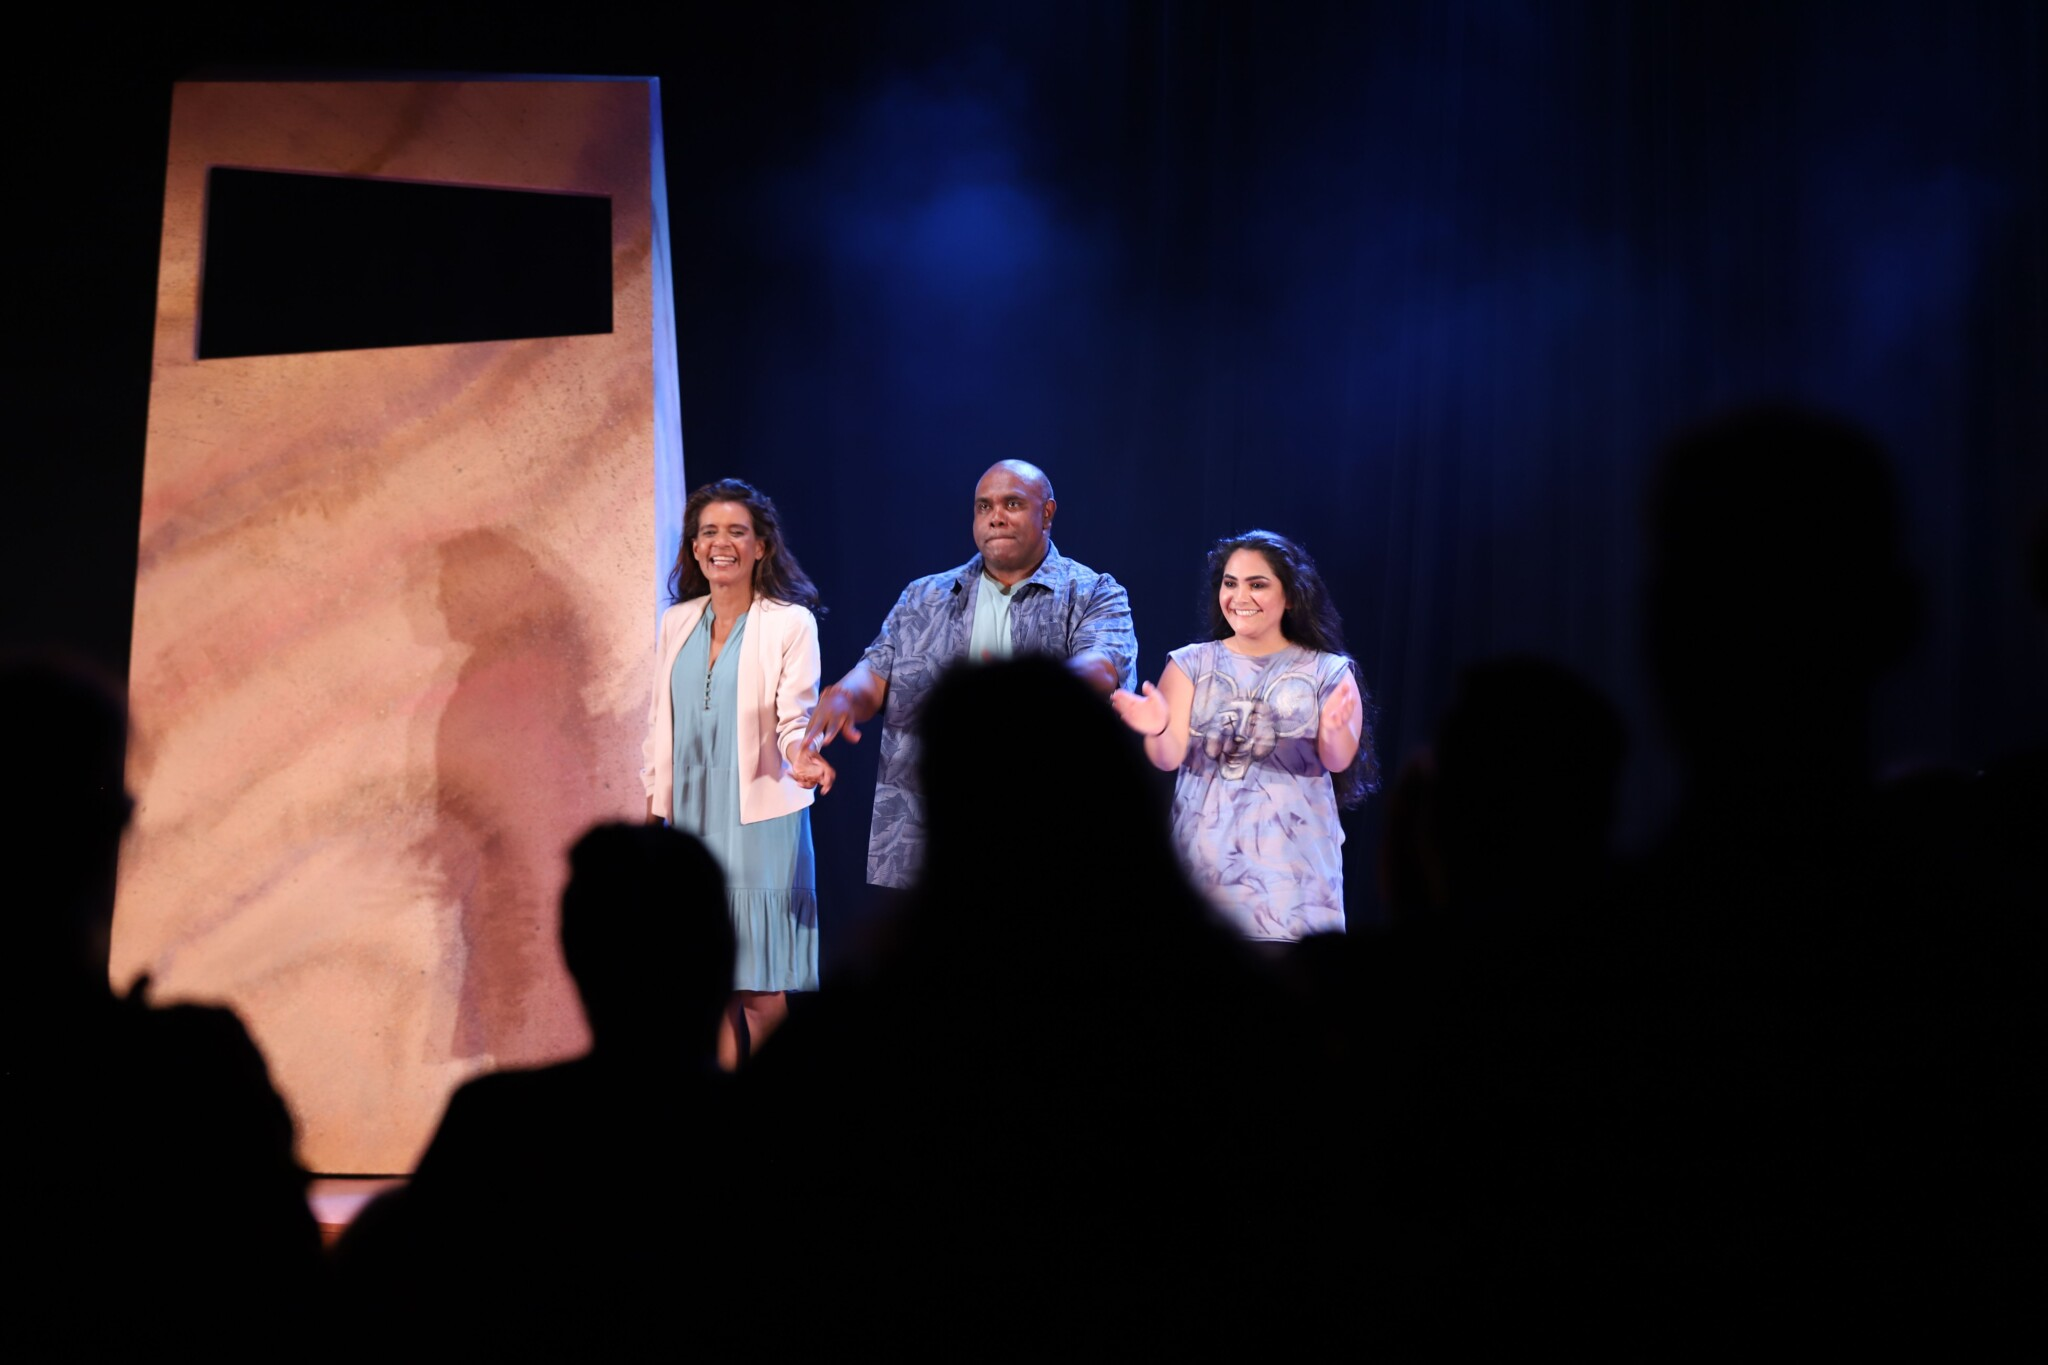 the cast claps on stage as the audience gives a standing ovation